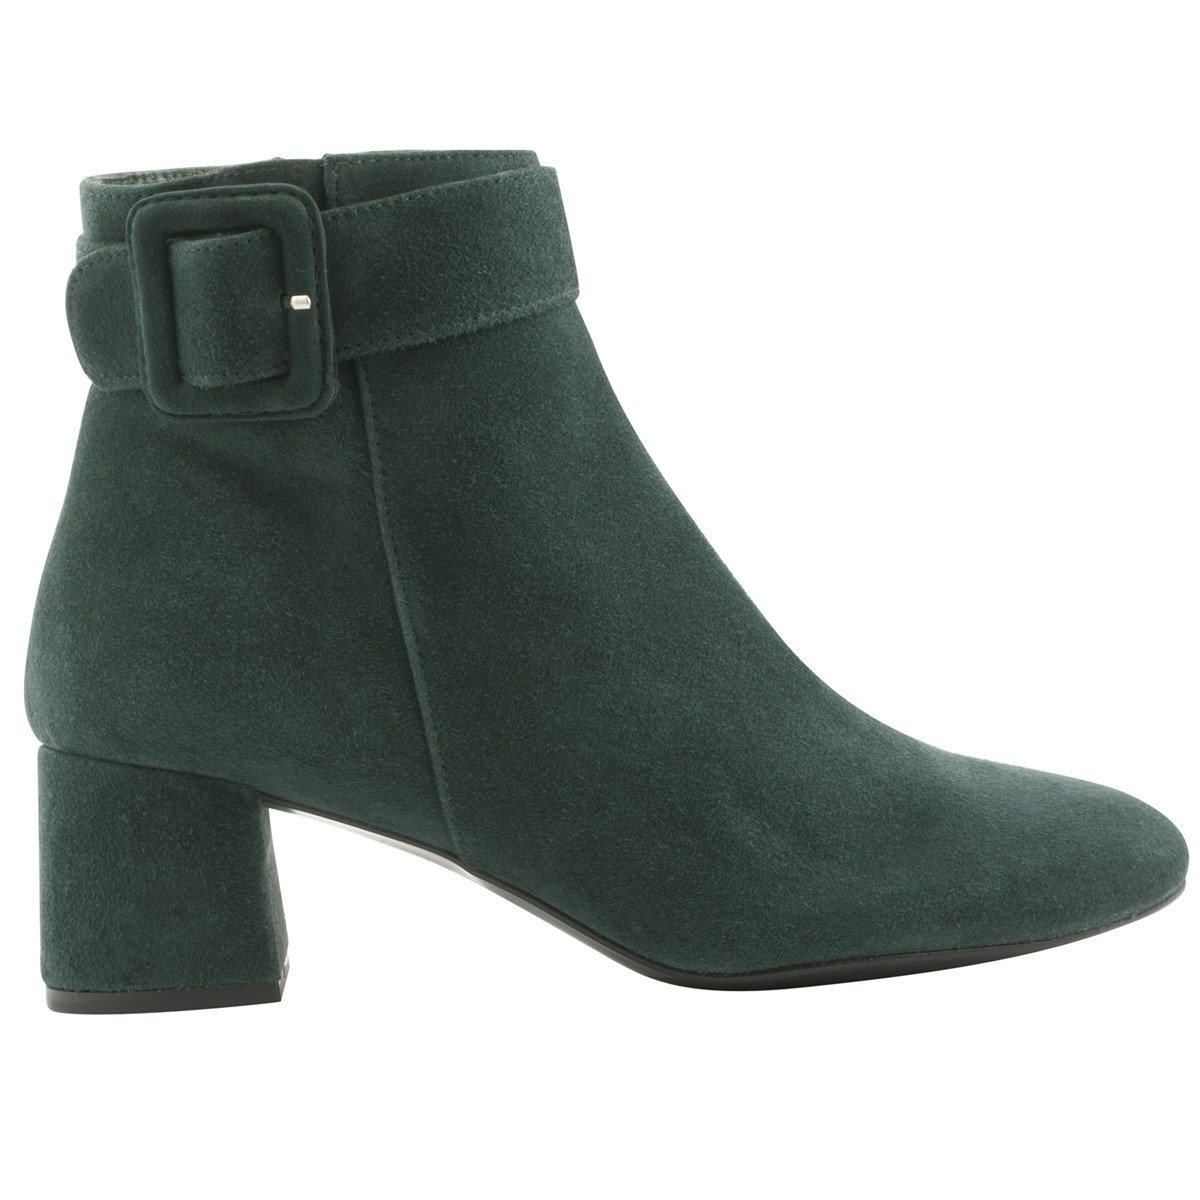 Exclusif Paris Bottines Exclusif Mutine Mutine Bottines Vert d300f9e - piero.space